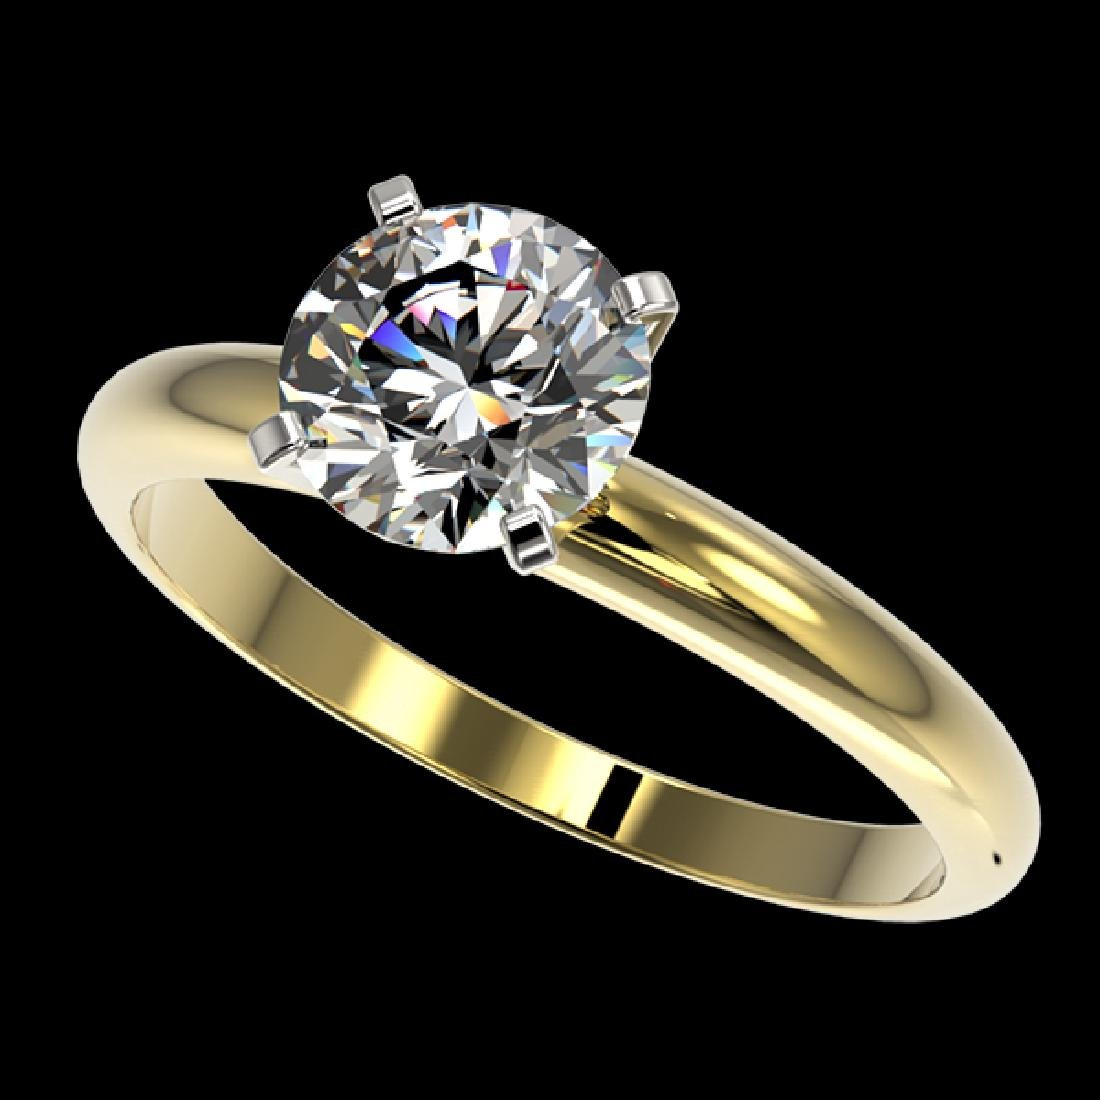 1.57 CTW Certified G-Si Quality Diamond Solitaire